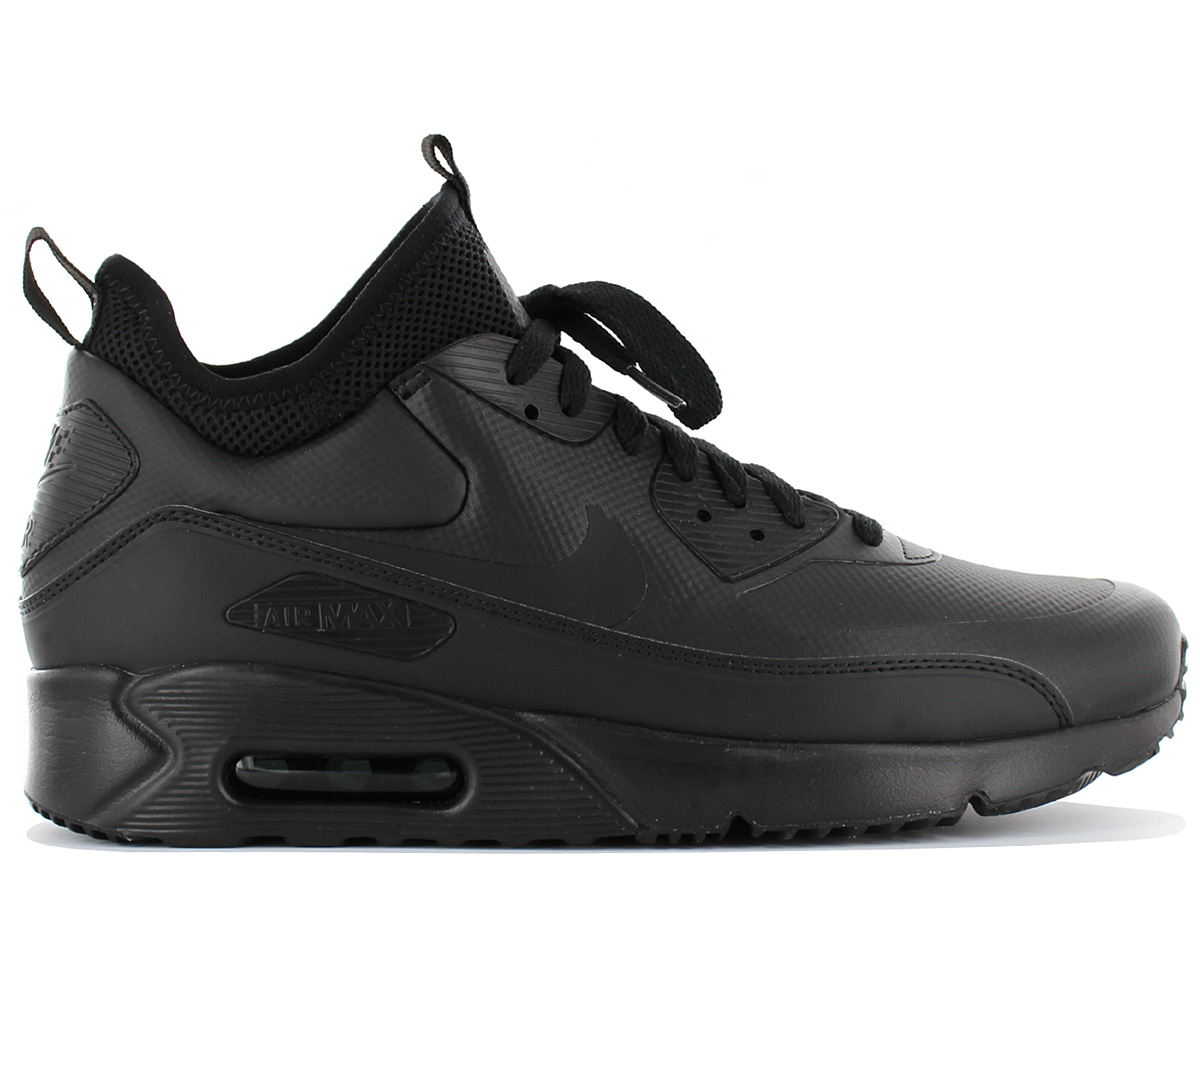 best website f677f c796b Details about NEW Nike Air Max 90 Ultra Mid Winter 924458-004 Men  s Shoes  Trainers Sneakers S